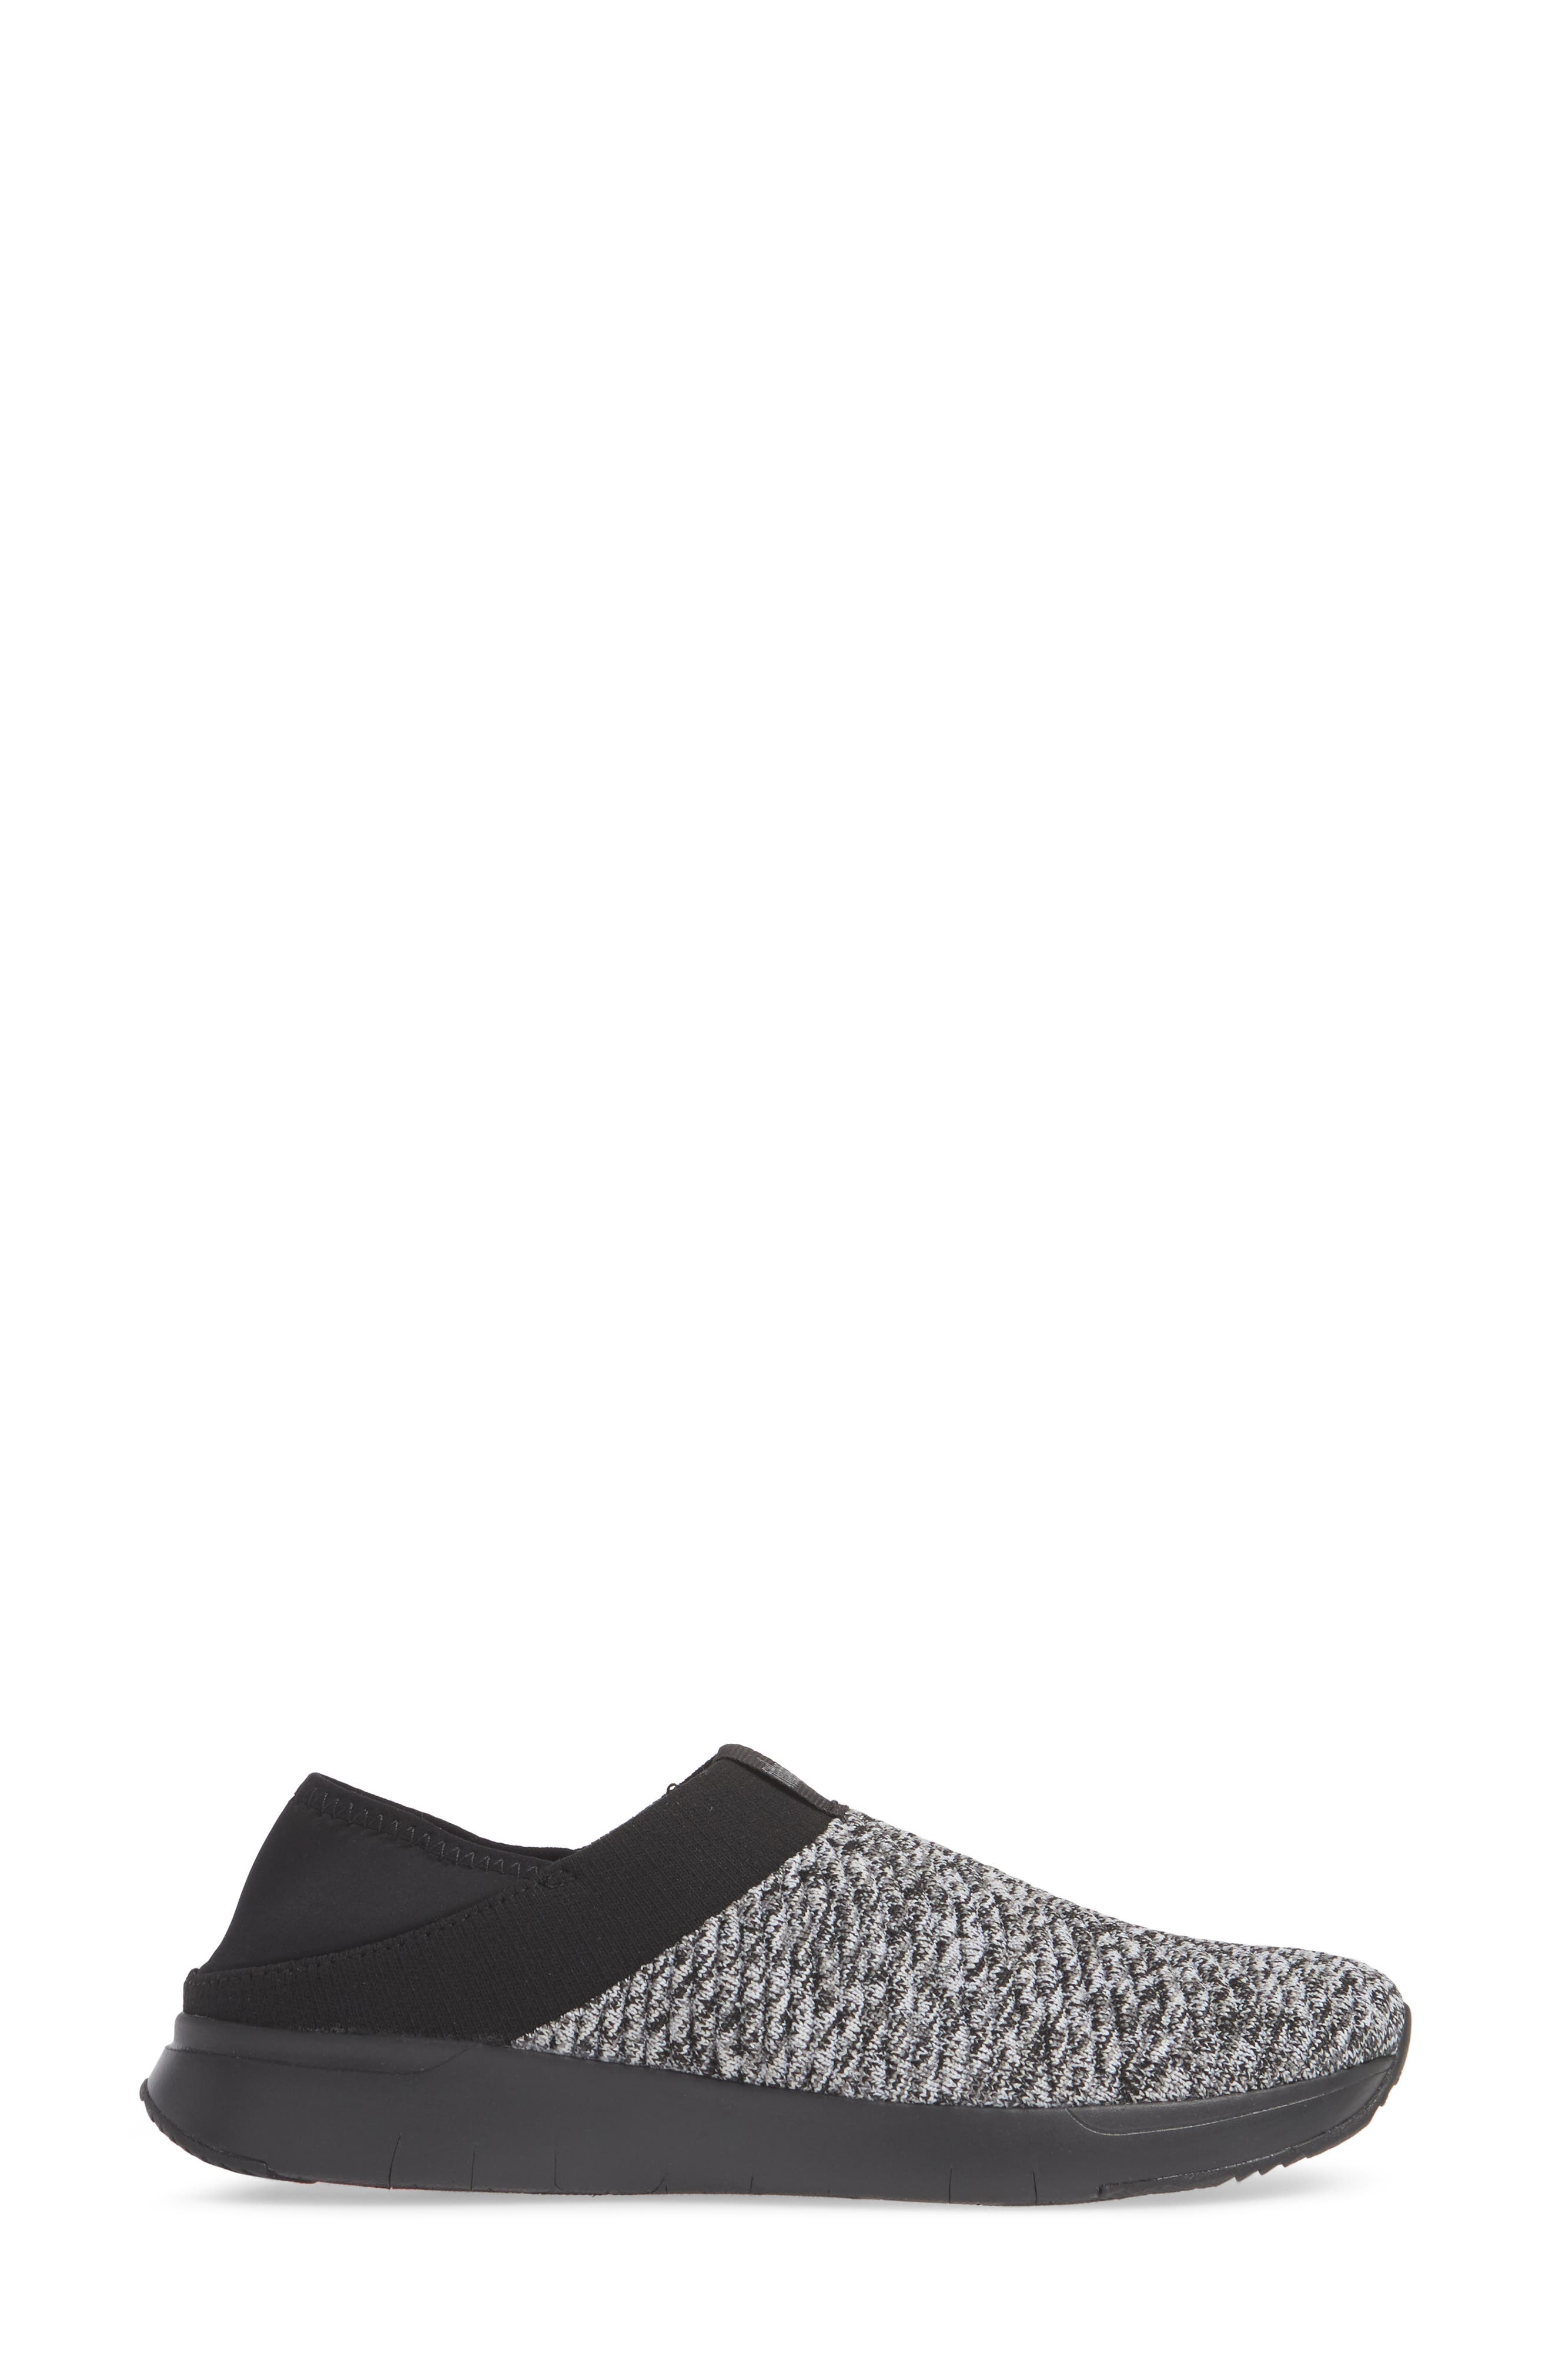 Artknit<sup>™</sup> Convertible Slip-On Sneaker,                             Alternate thumbnail 2, color,                             BLACK MIX